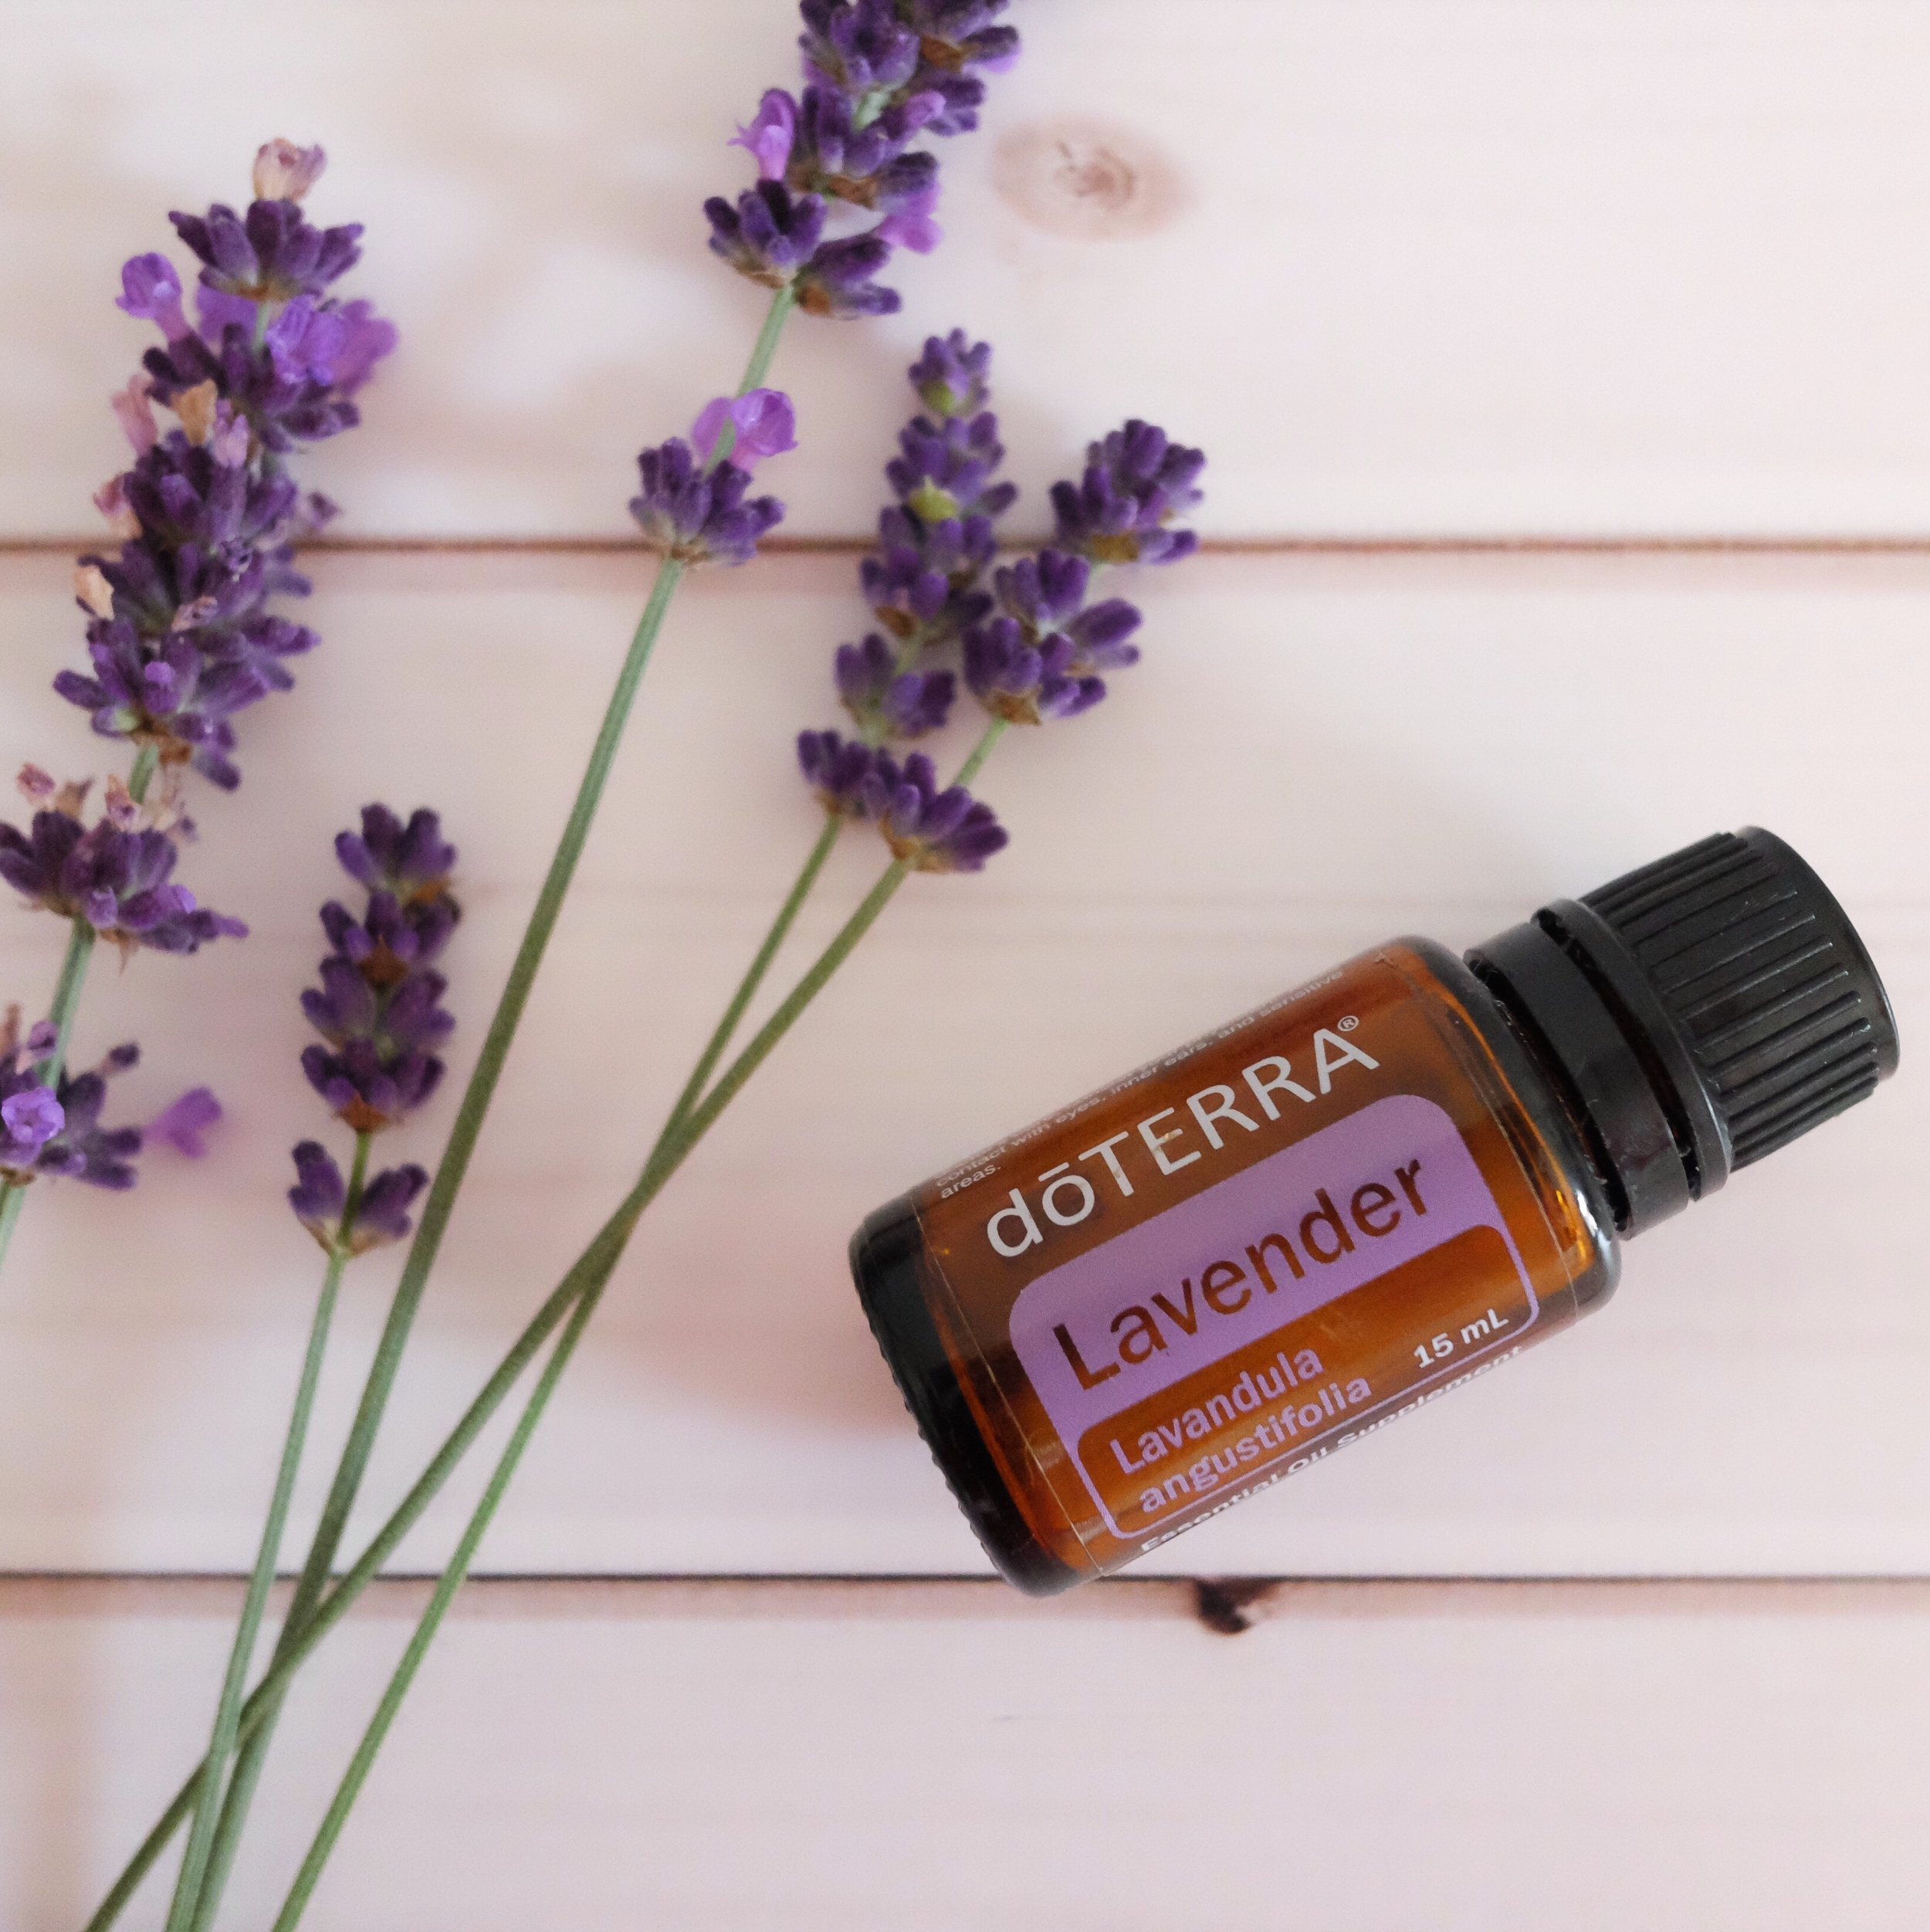 Lavender - Lavender is often considered a must-have oil to keep on hand at all times due to its versatile uses, including calming and relaxing properties that promote peaceful sleep and ease feelings of tension.